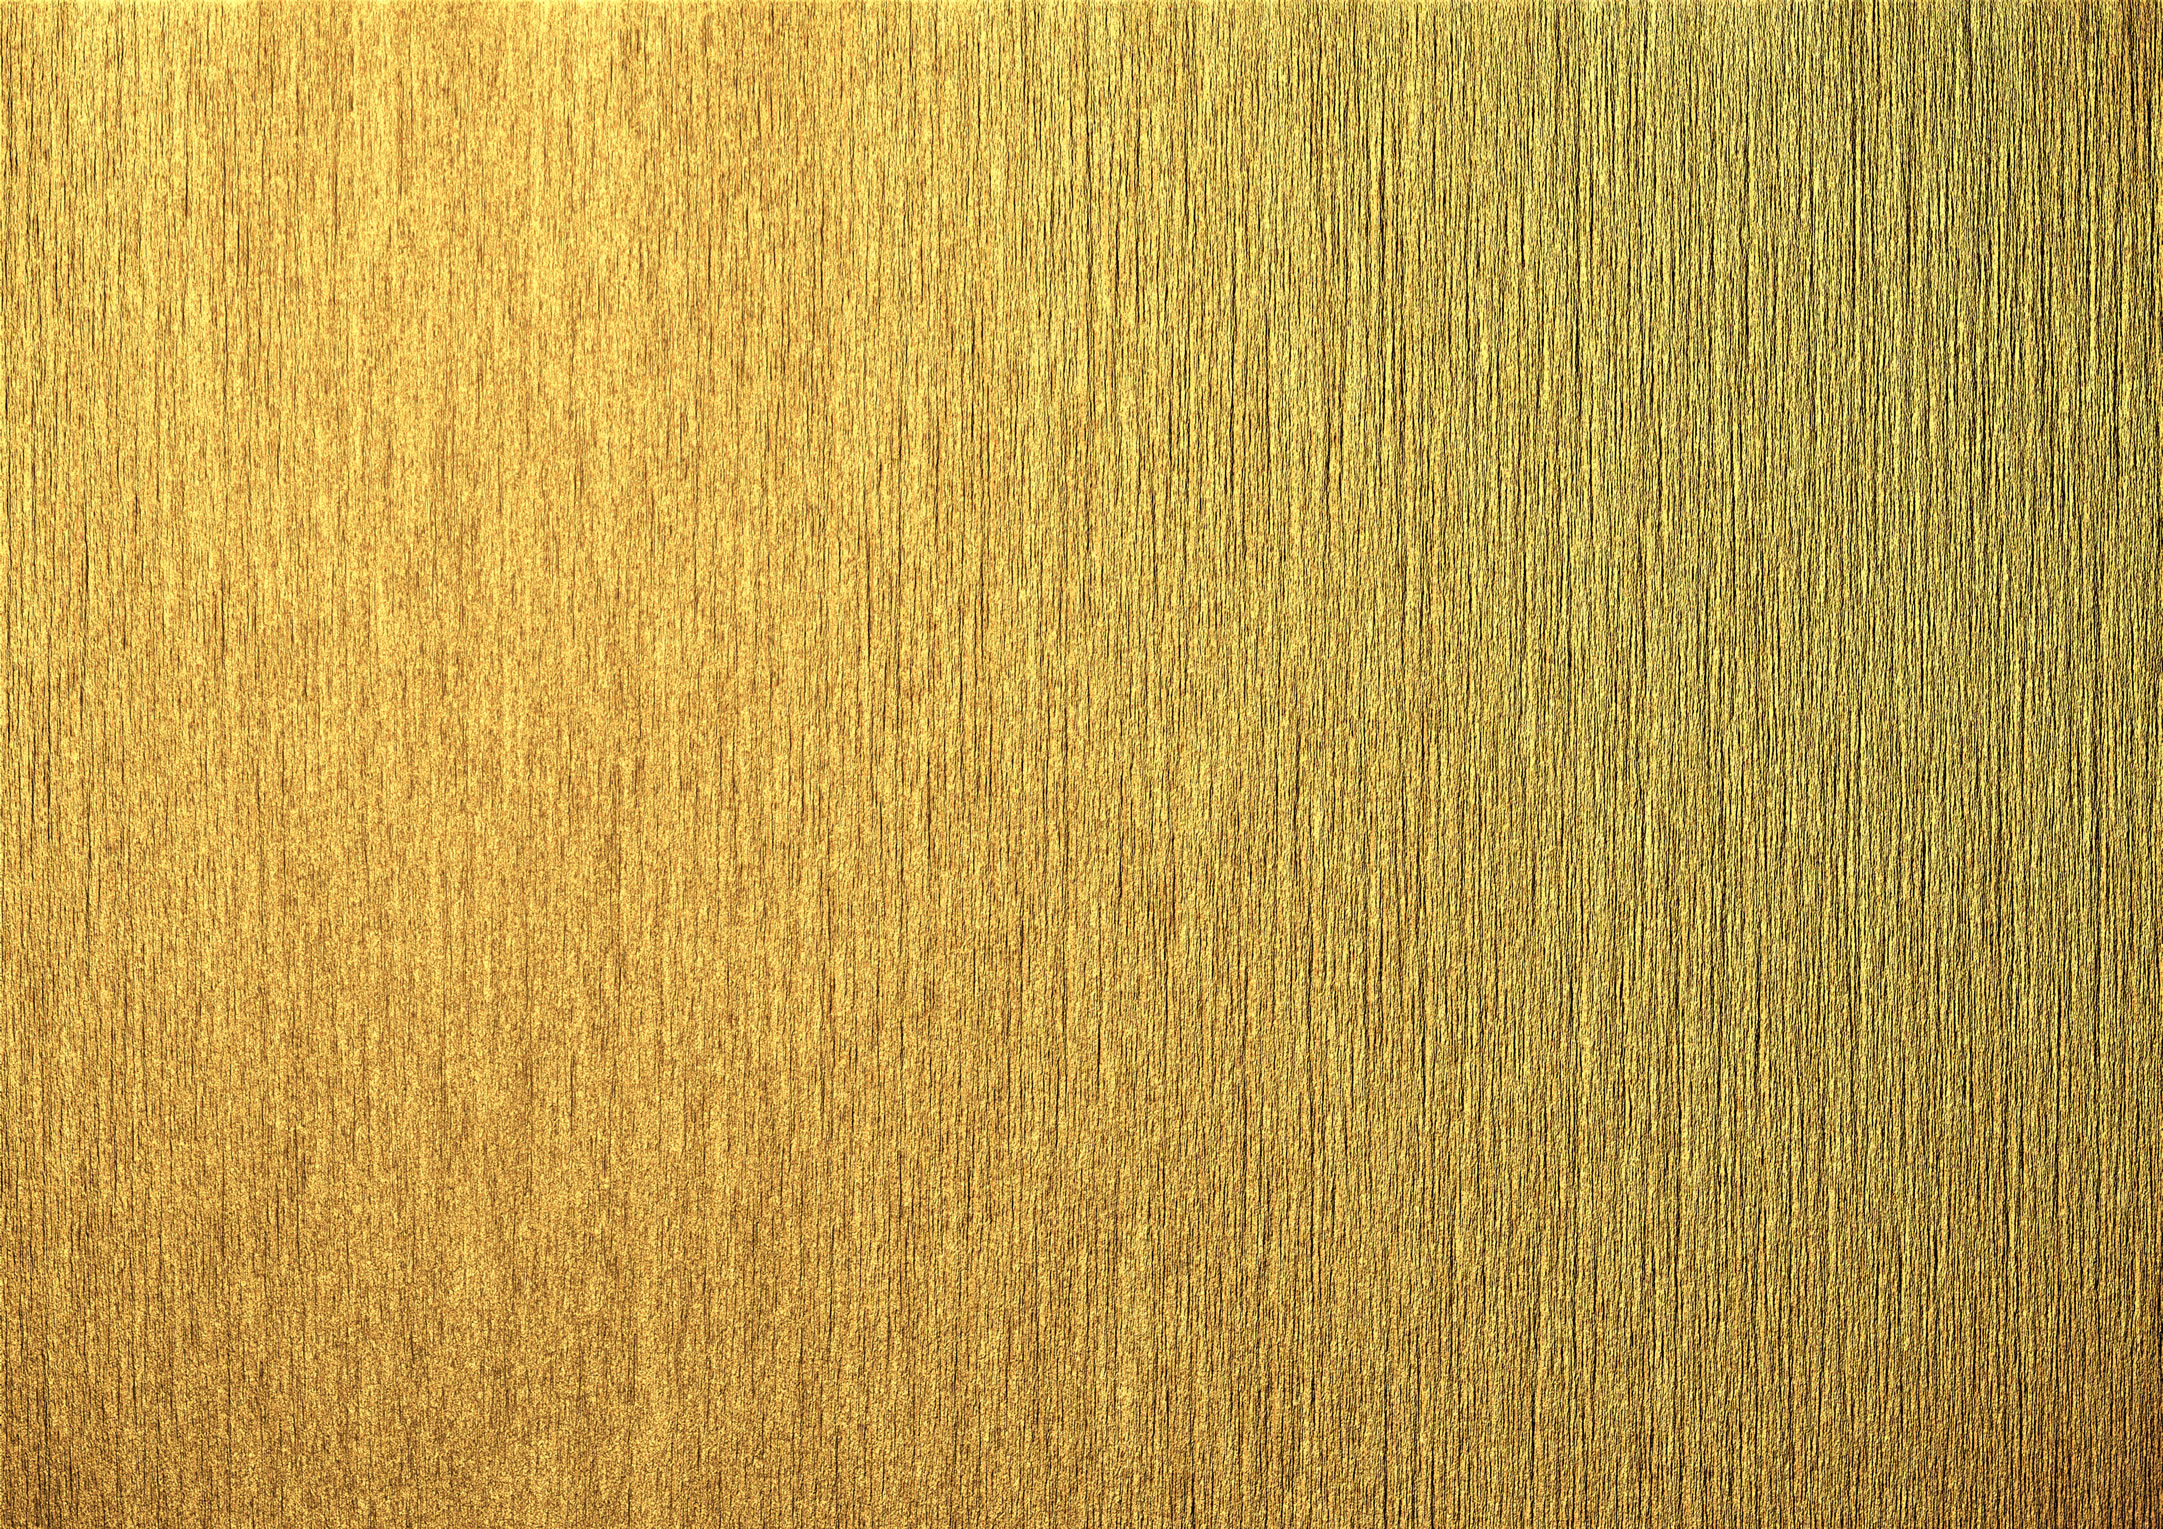 gold texture texture gold gold golden background background 2163x1529